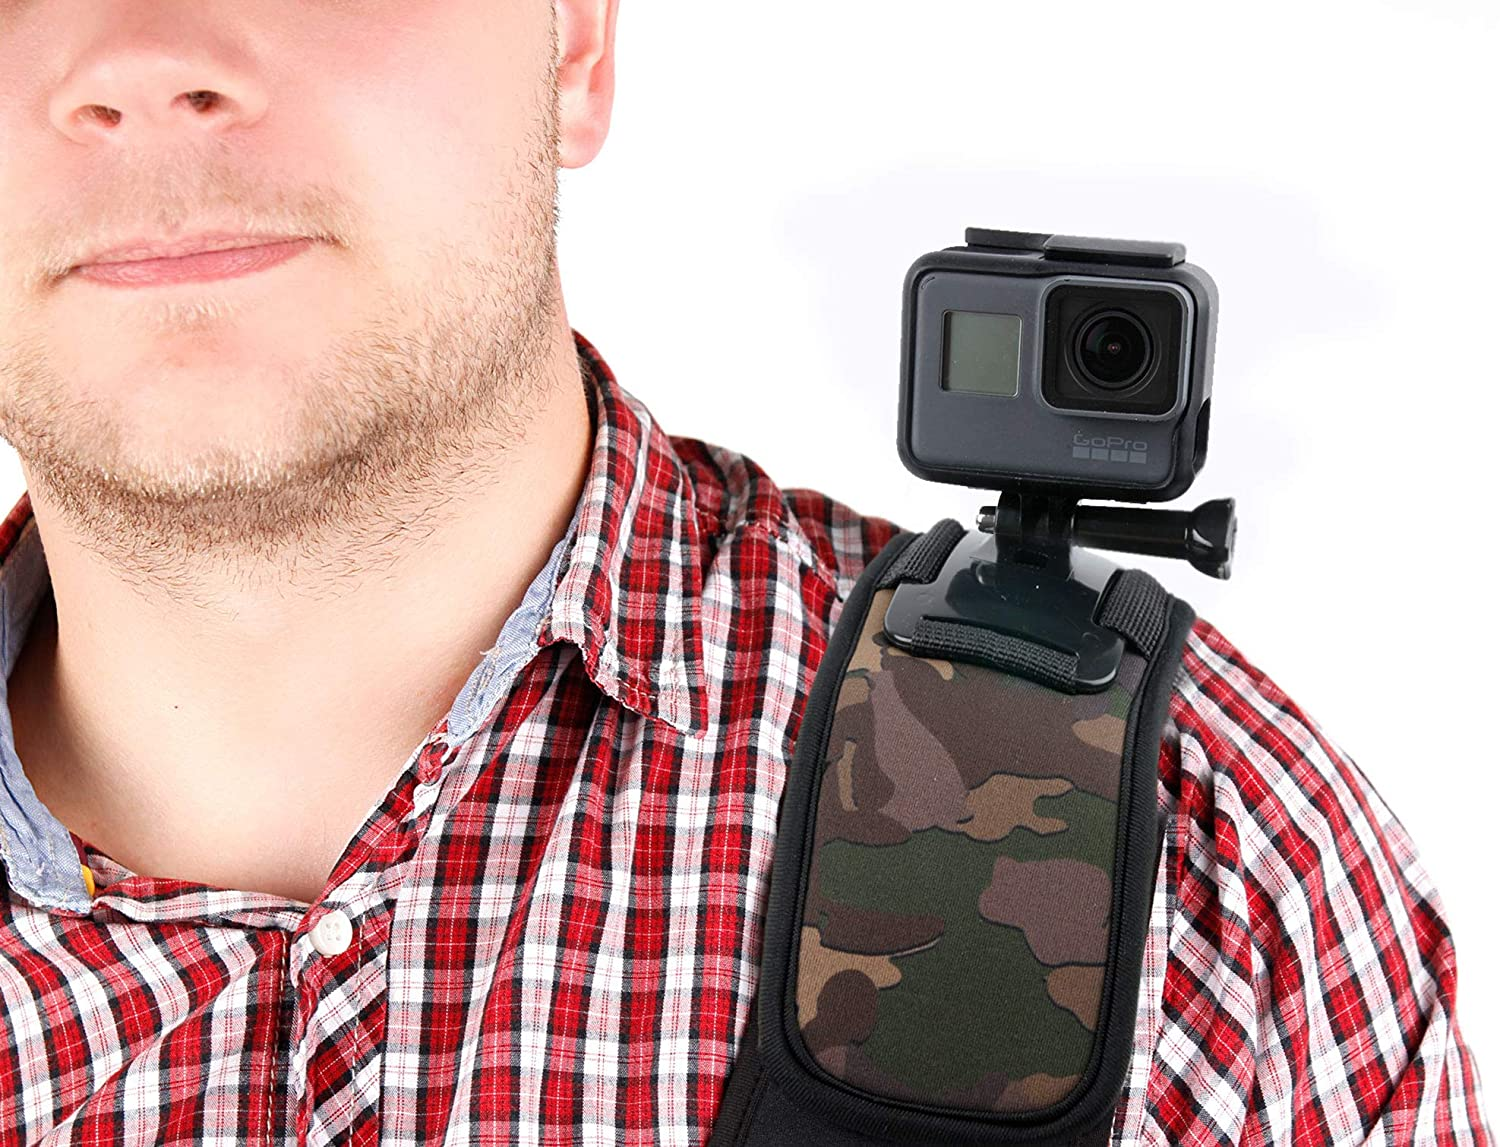 with Bonus Screw Thread Adapter! DURAGADGET Camouflage Detail Shoulder Mount//Harness in Black Neoprene Suitable for Olympus TG-3|TG-850|SH-2|TG-860|Pen E-PL7|SH-60|OM-D E-M10 /& Stylus Tough TG-4